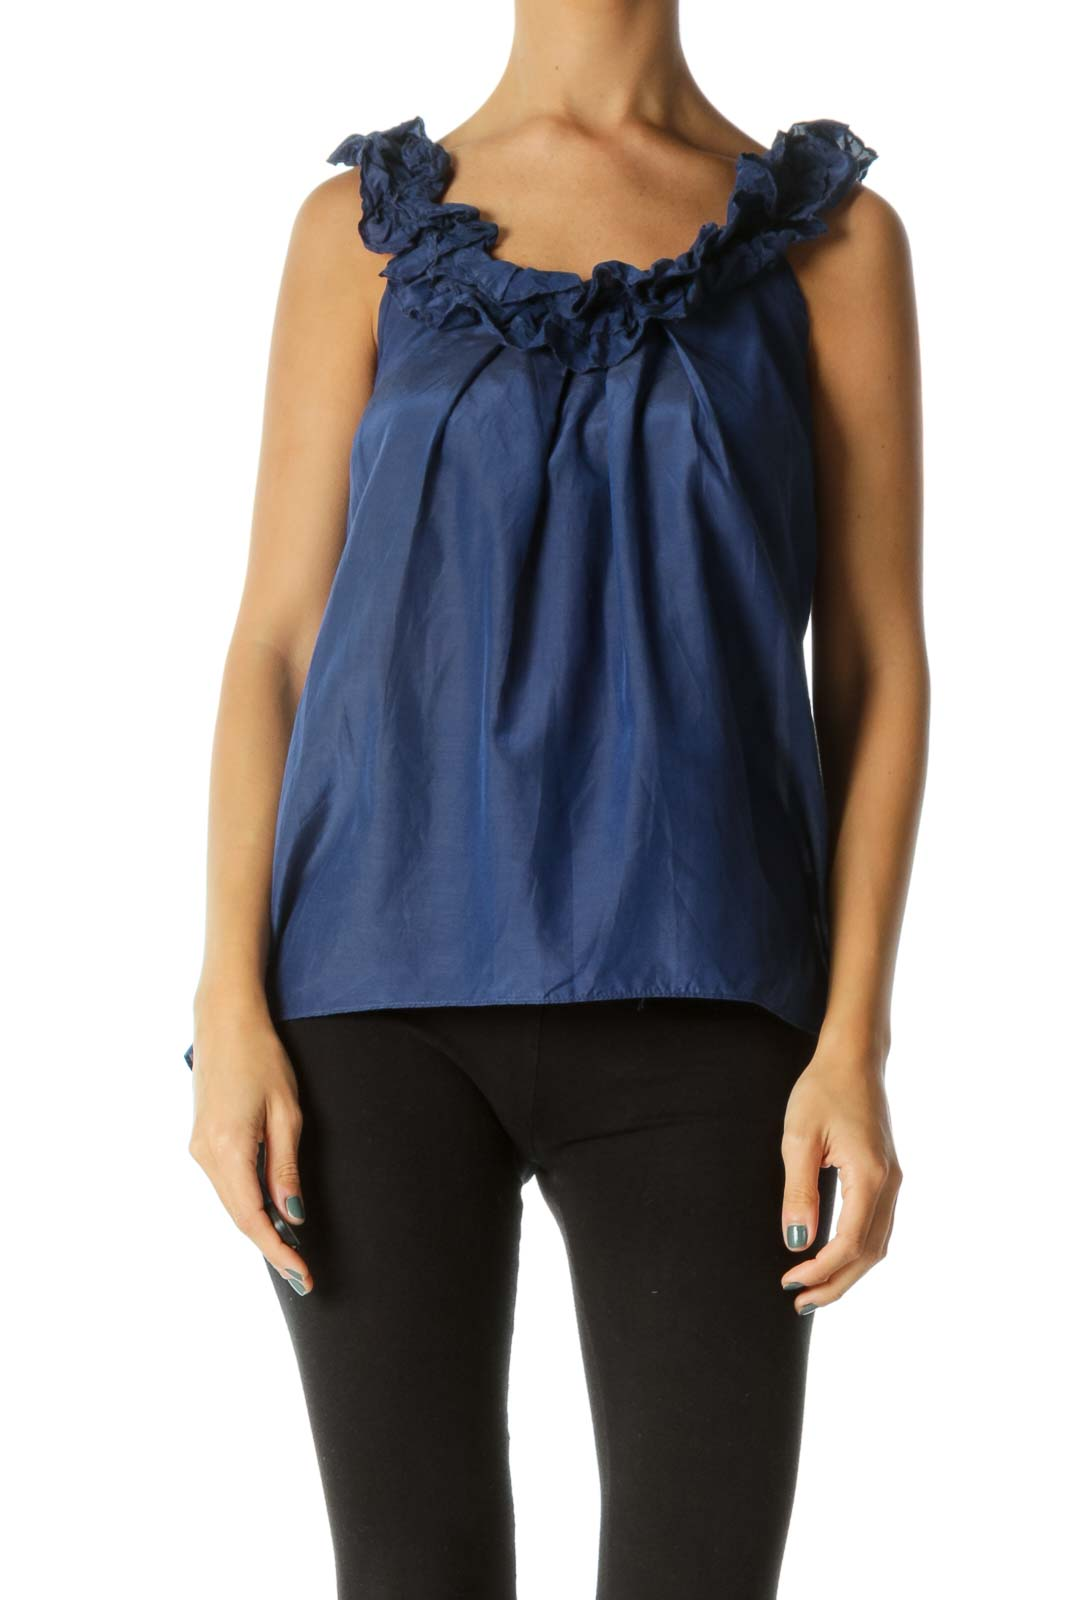 Blue V-Neck Ruffled Neckline 100% Silk Shiny Tank Top